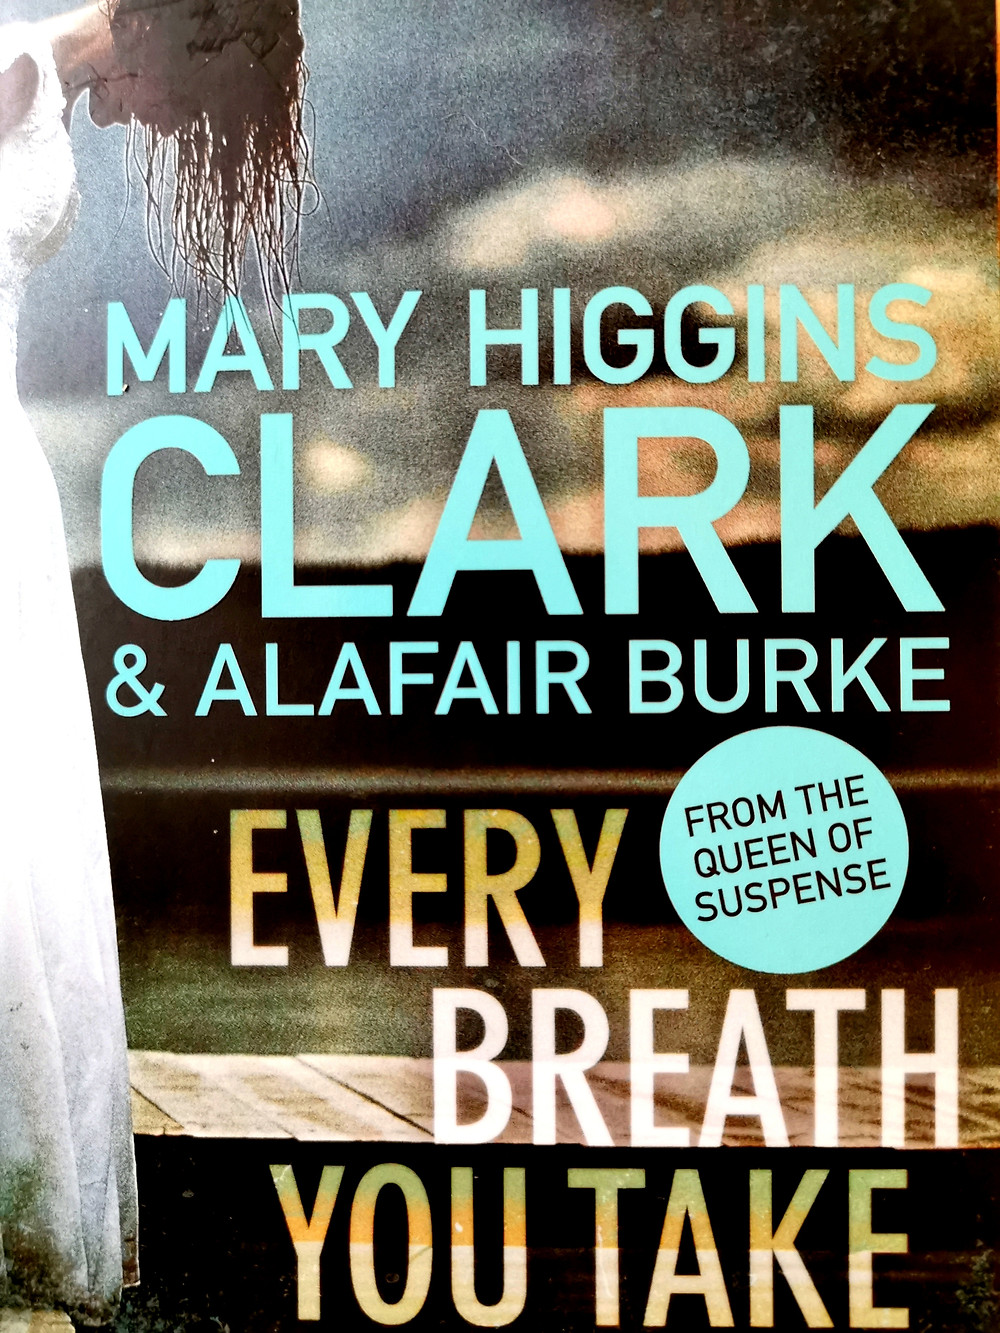 Cover image of Mary Higgins Clarke and Alafair Burke's Every Breath You Take' with a drenched woman in a white dress leaning over the edge